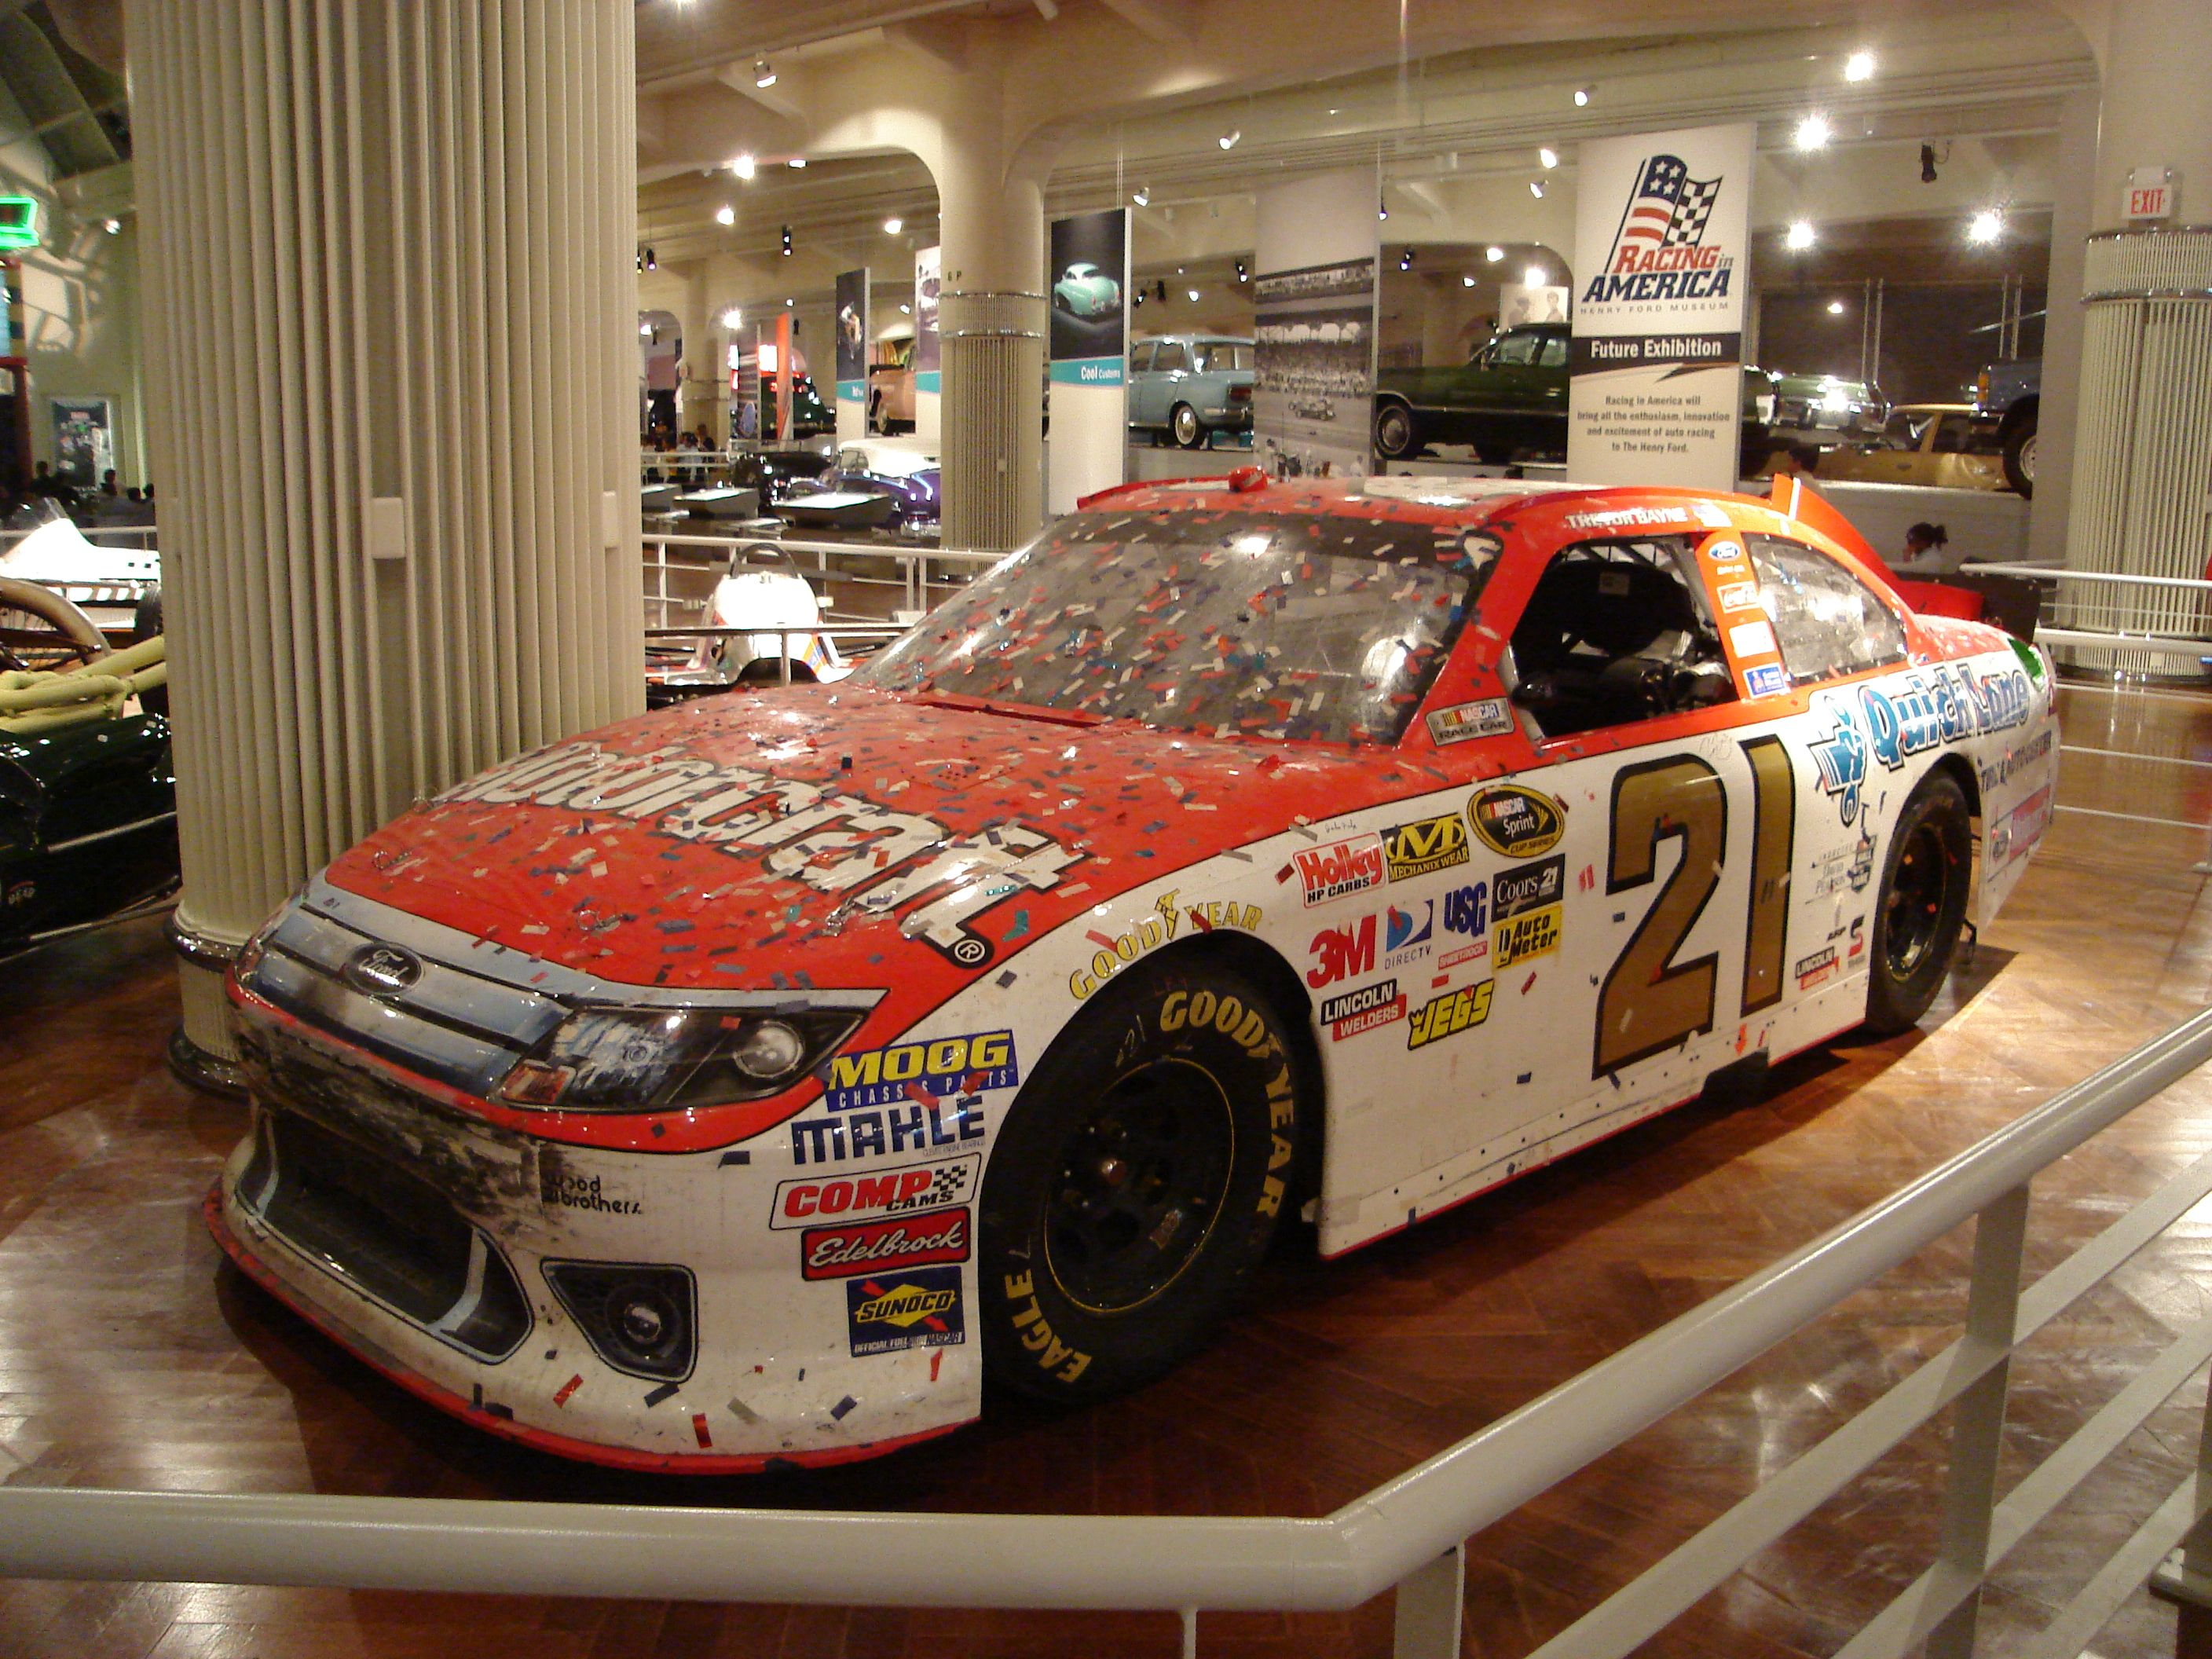 The 21 Car Trevor Bayne Won The 2011 Daytona 500 In At The Henry